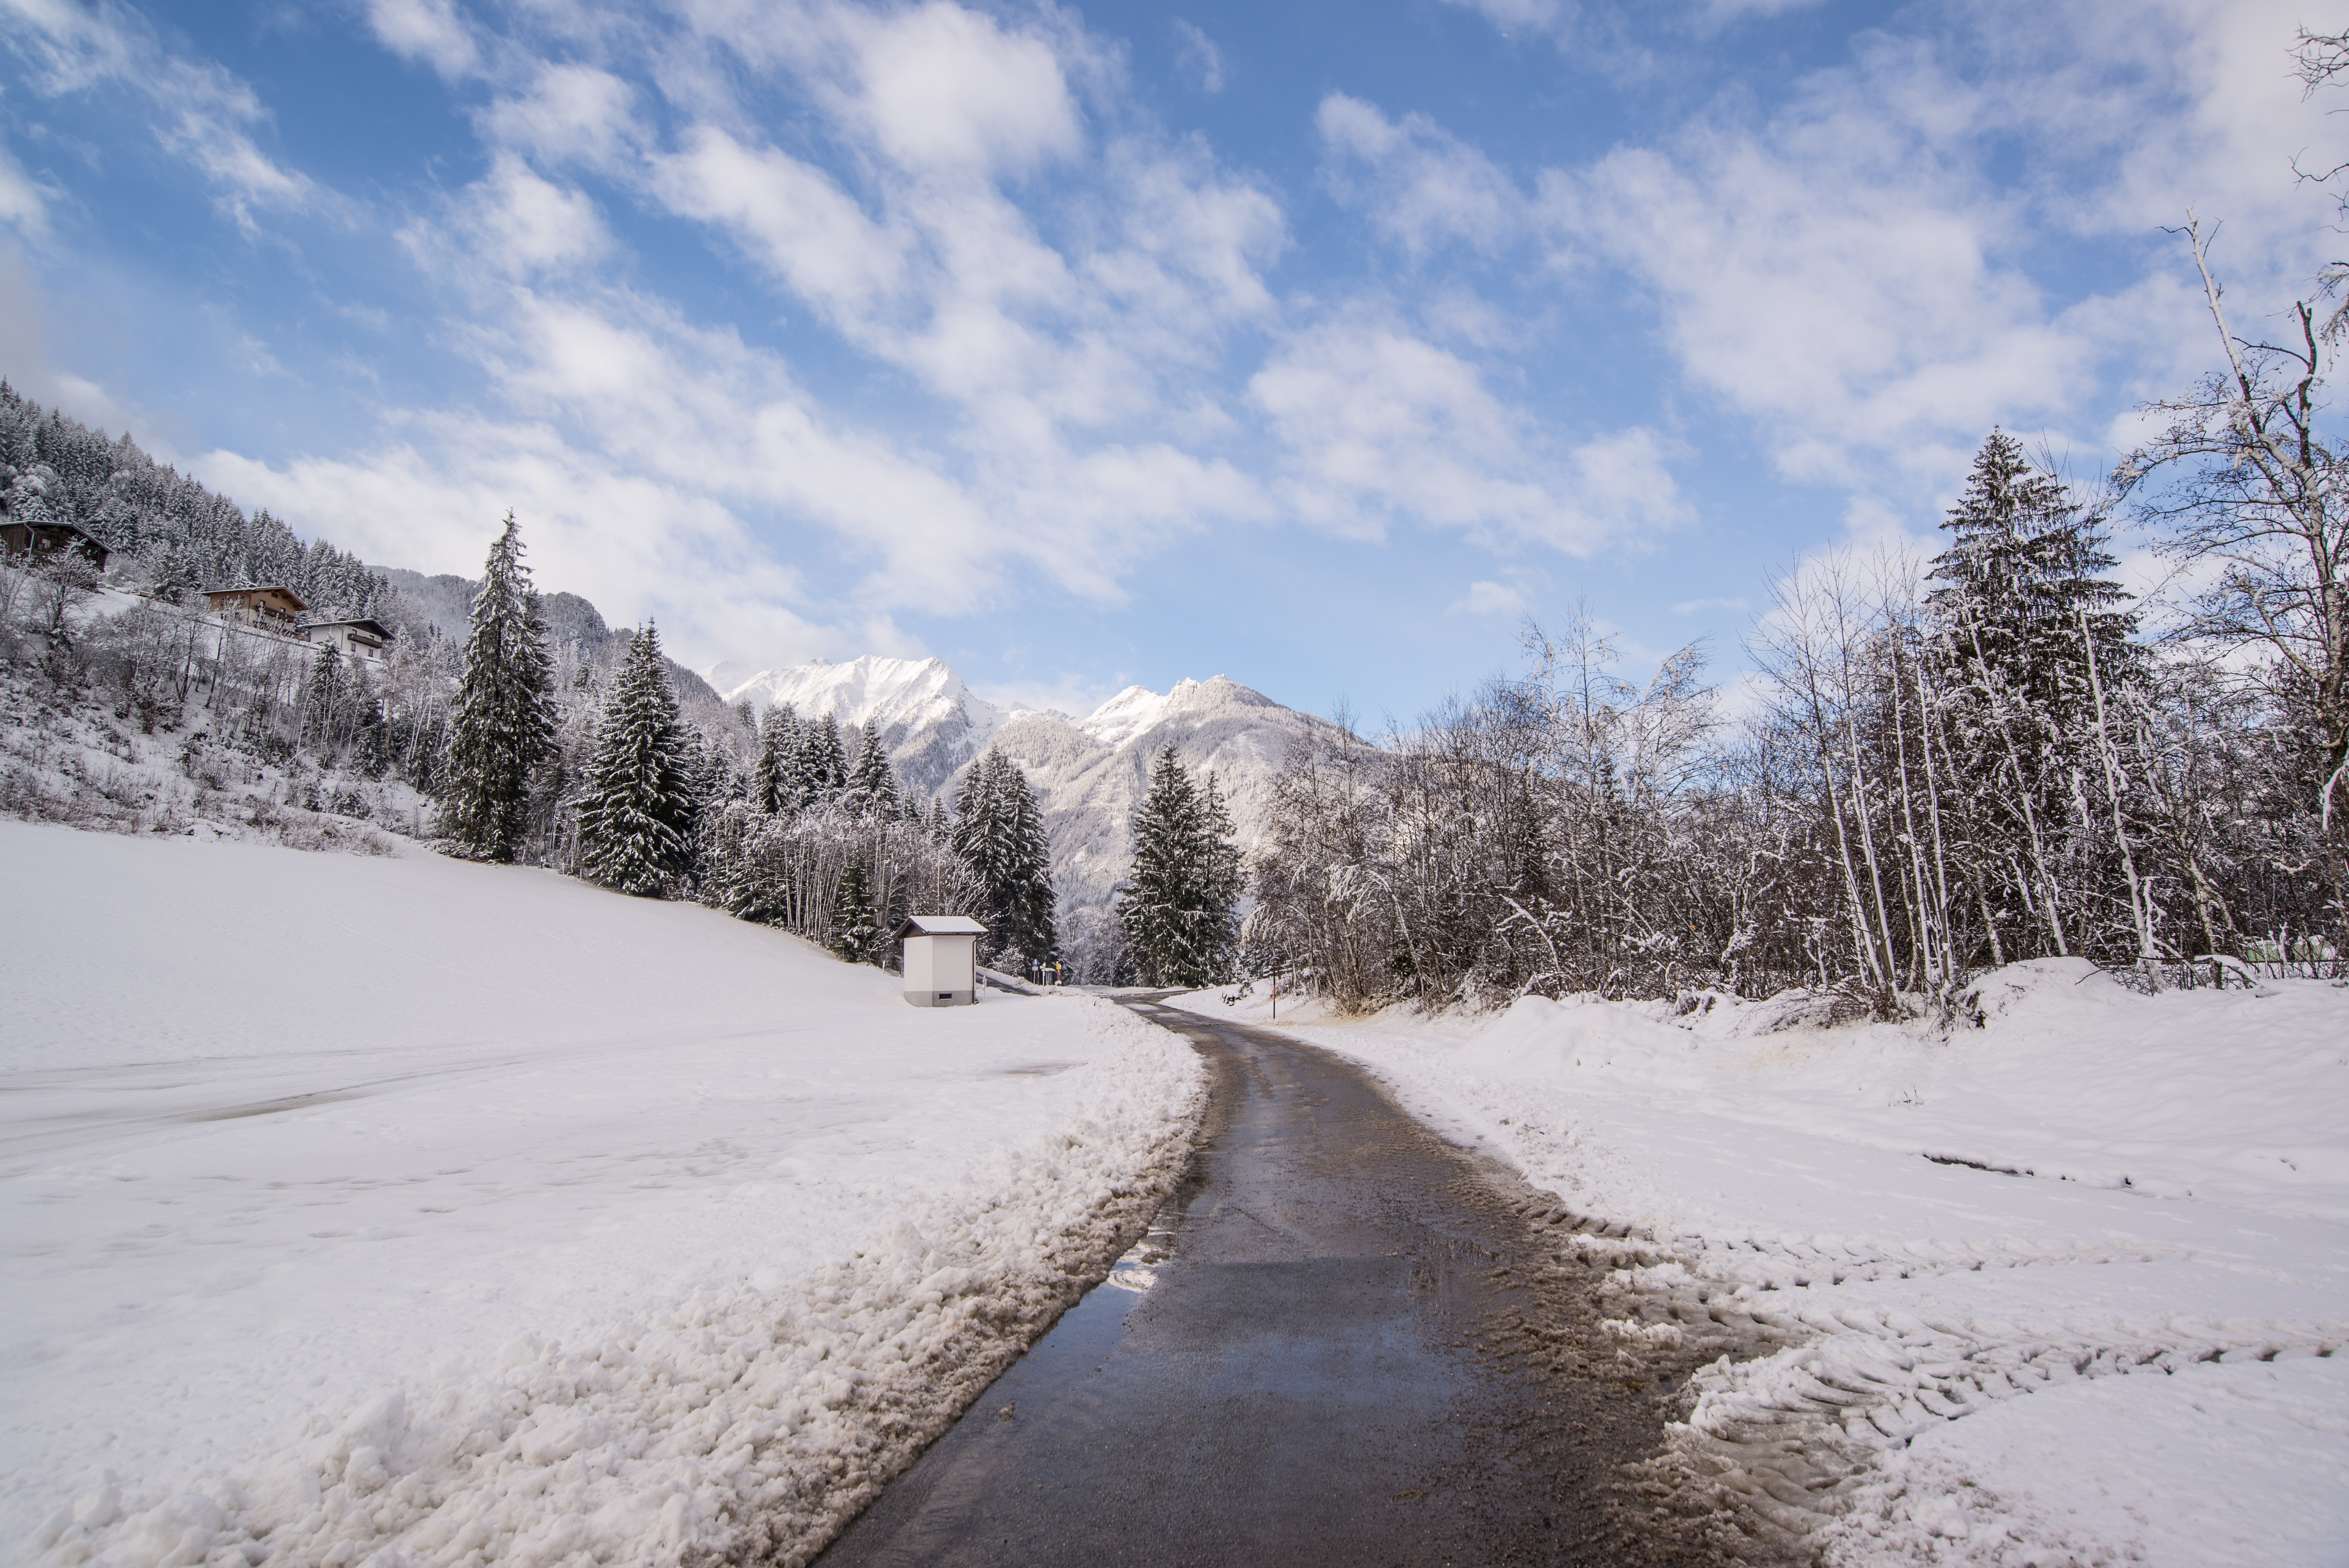 Pavement Road Surrounded by Snow and Pine Trees, Asphalt, Sky, Perspective, Road, HQ Photo